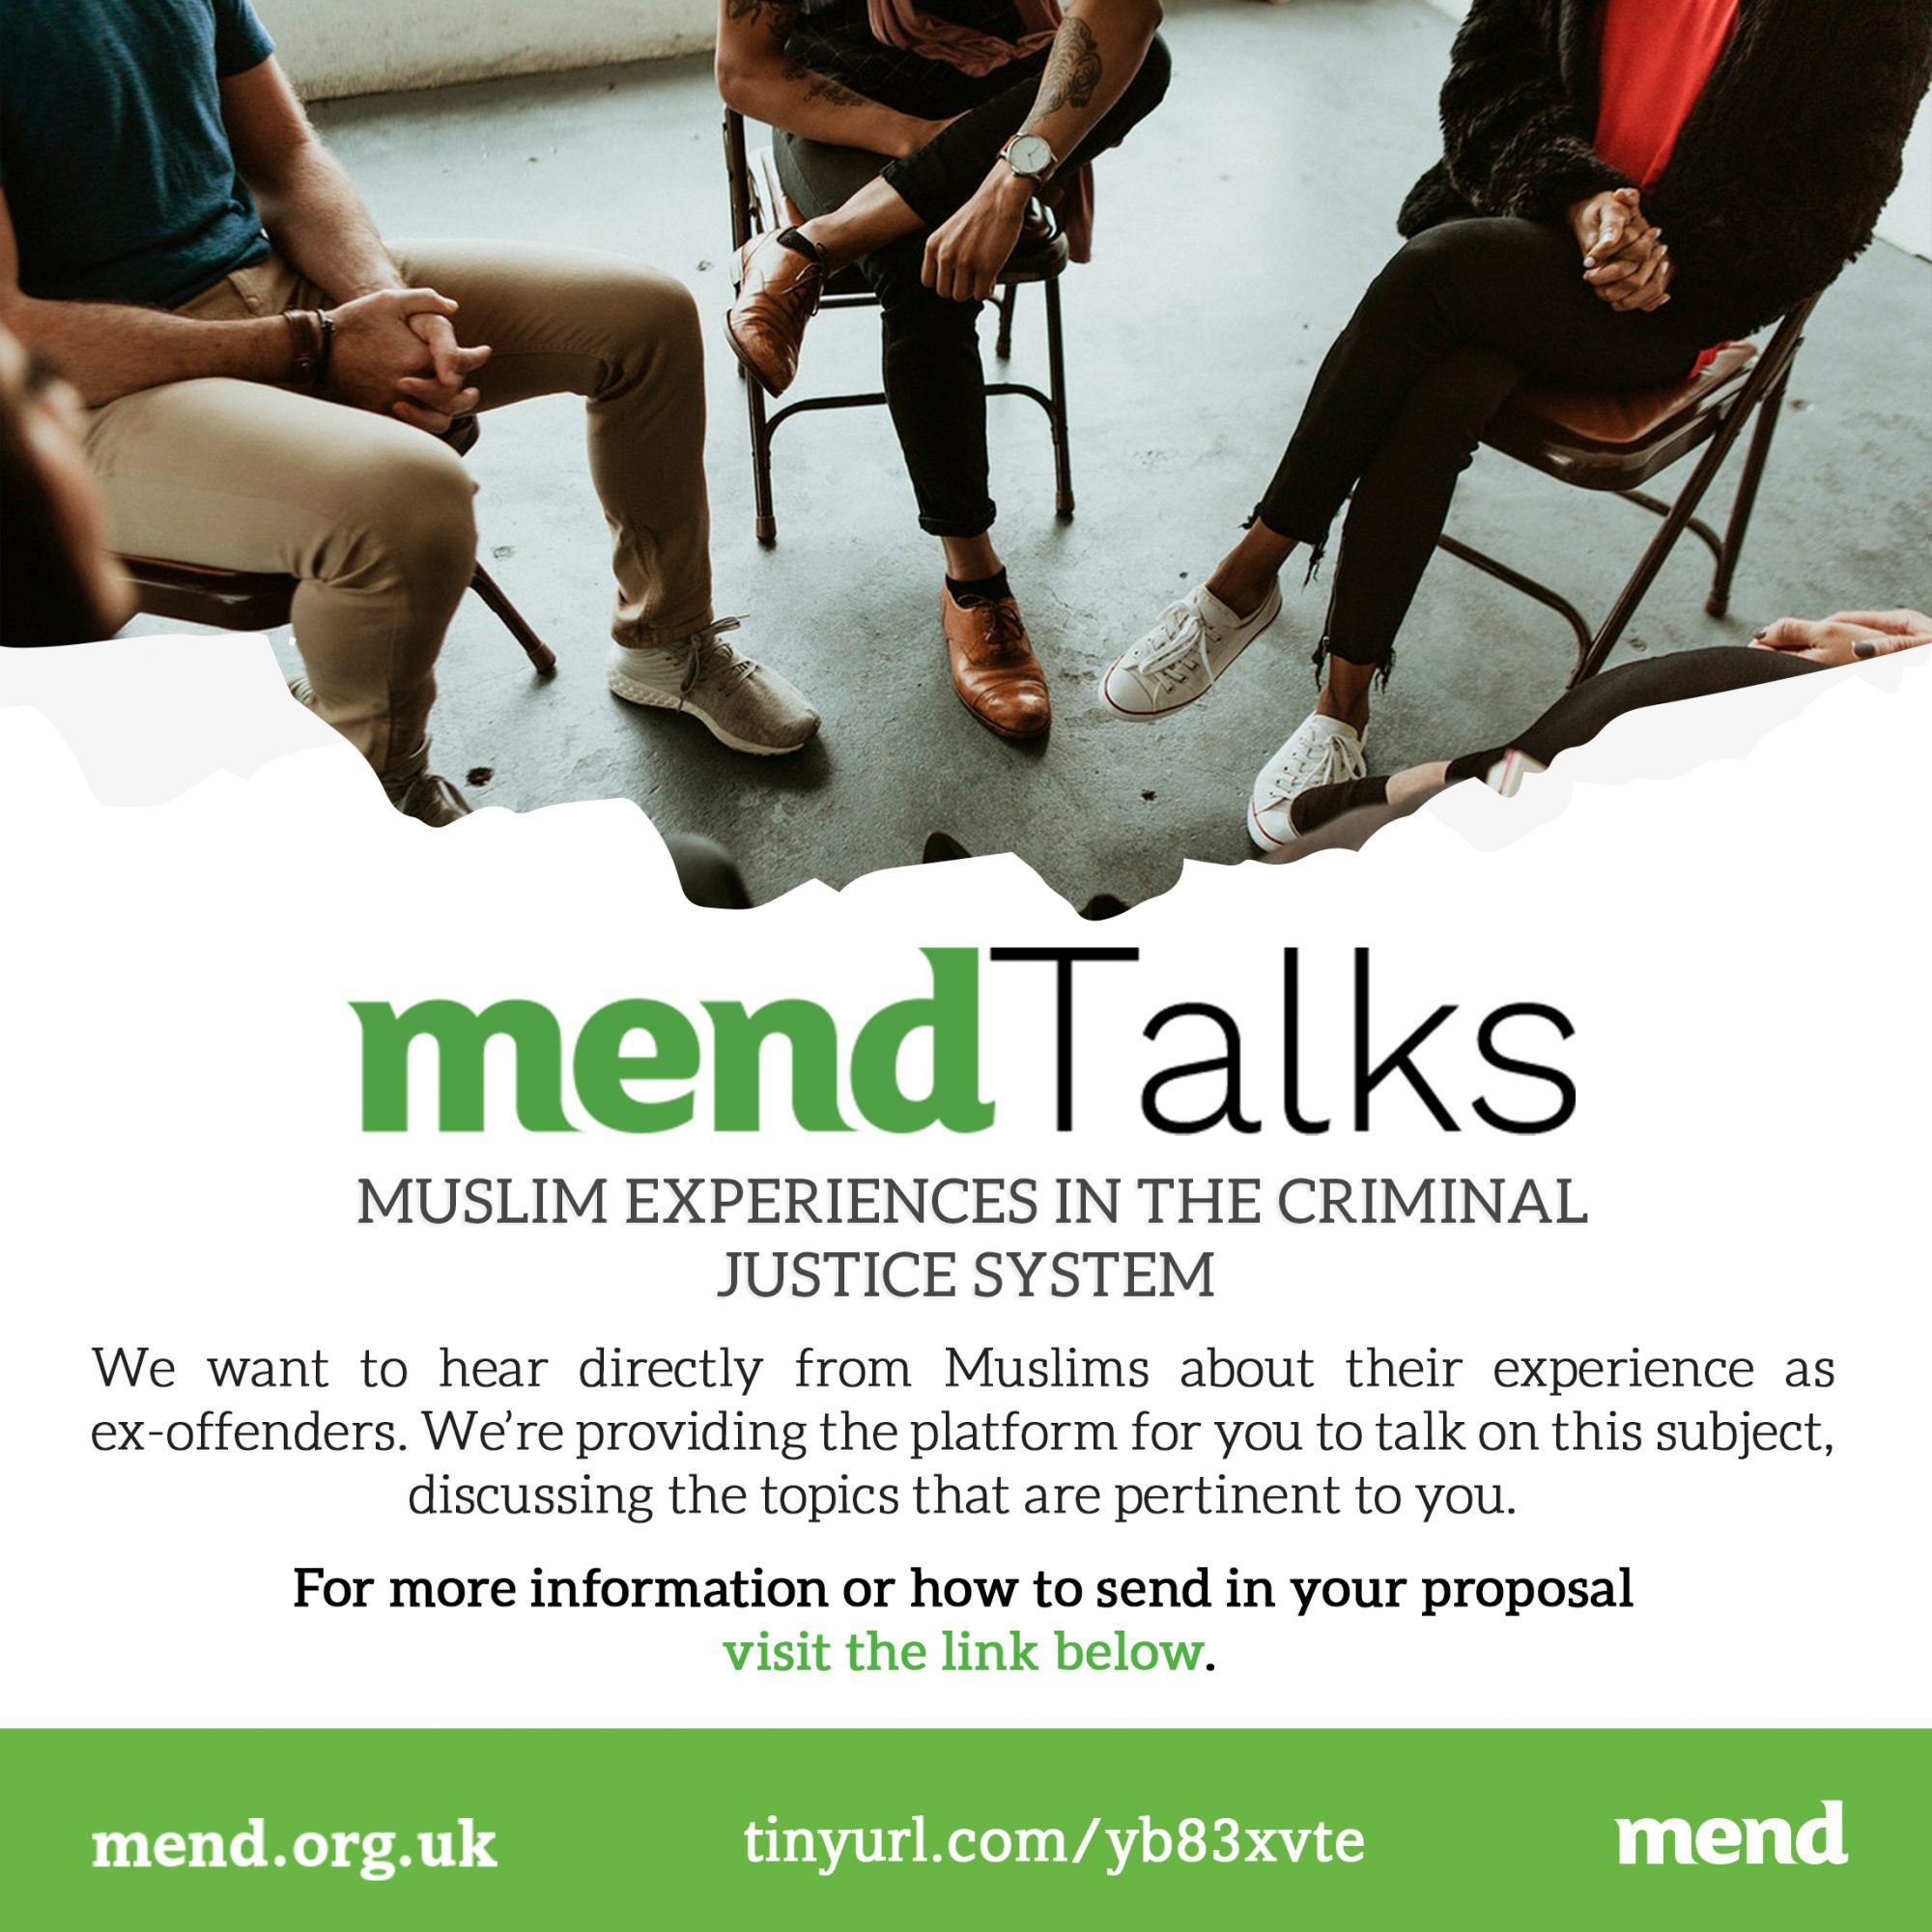 MENDTalks: Muslim Experiences in the Criminal Justice System (Contributors)